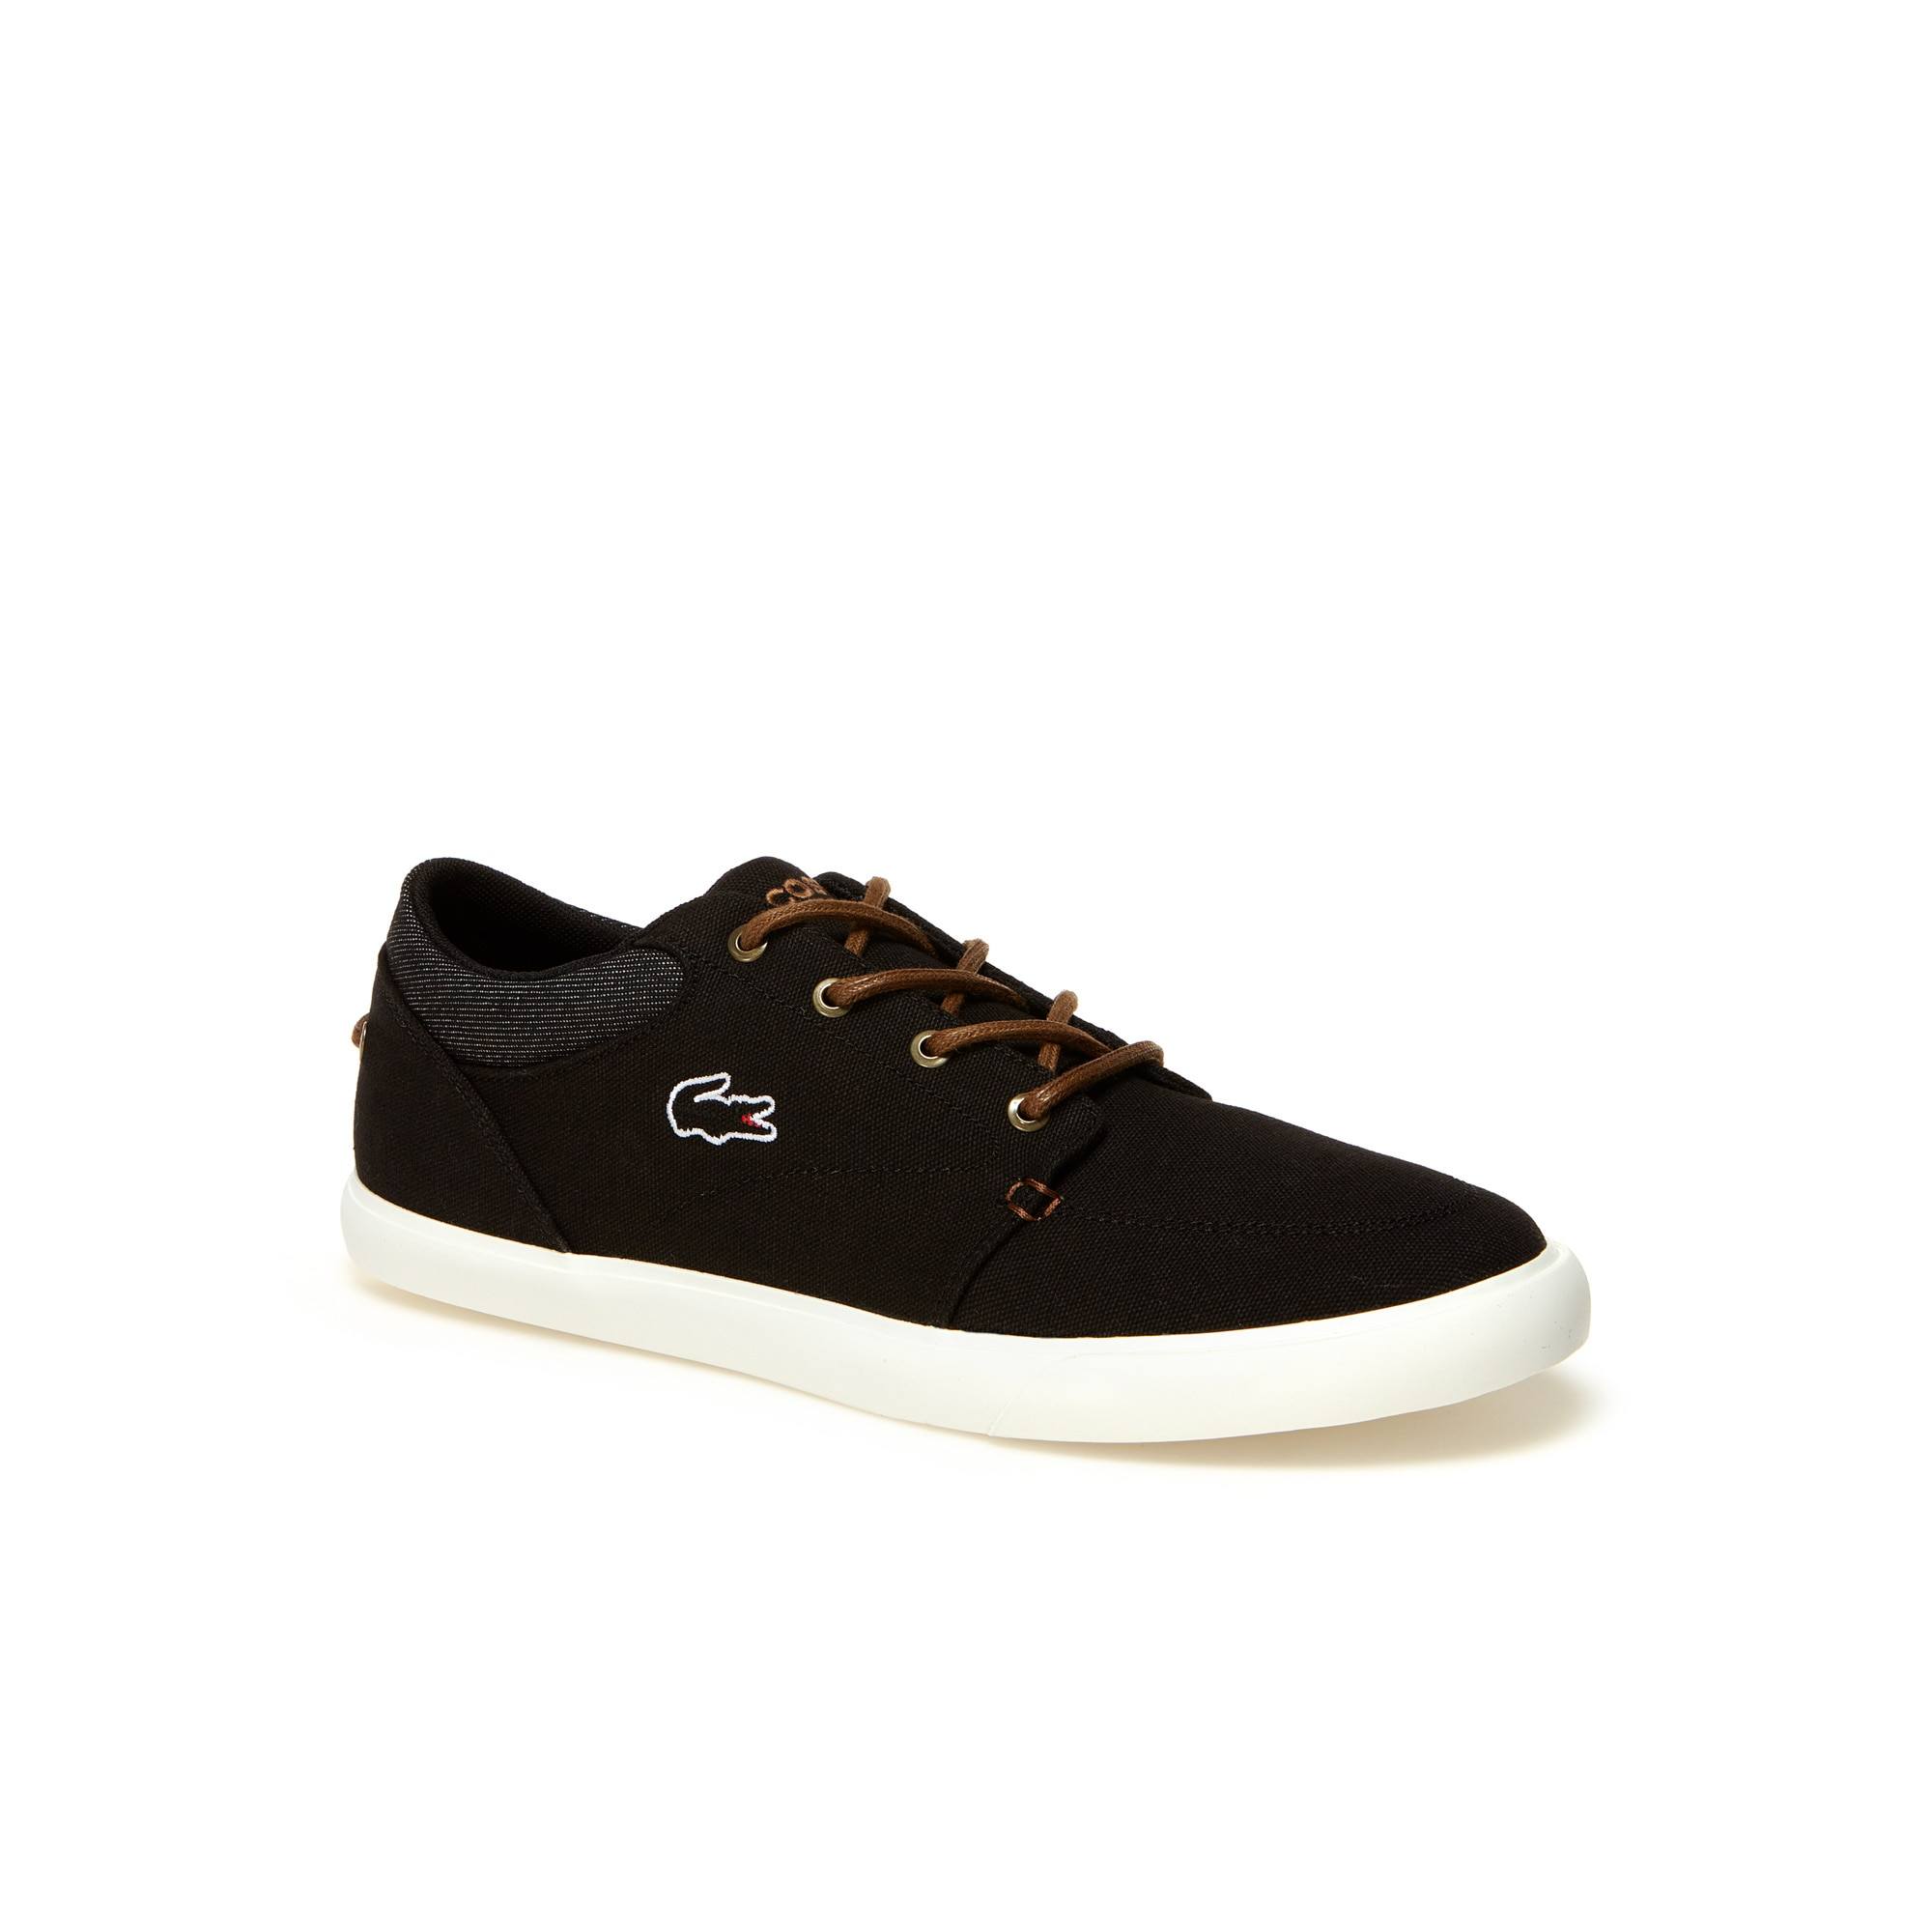 Men's Bayliss Vulc Canvas Trainers